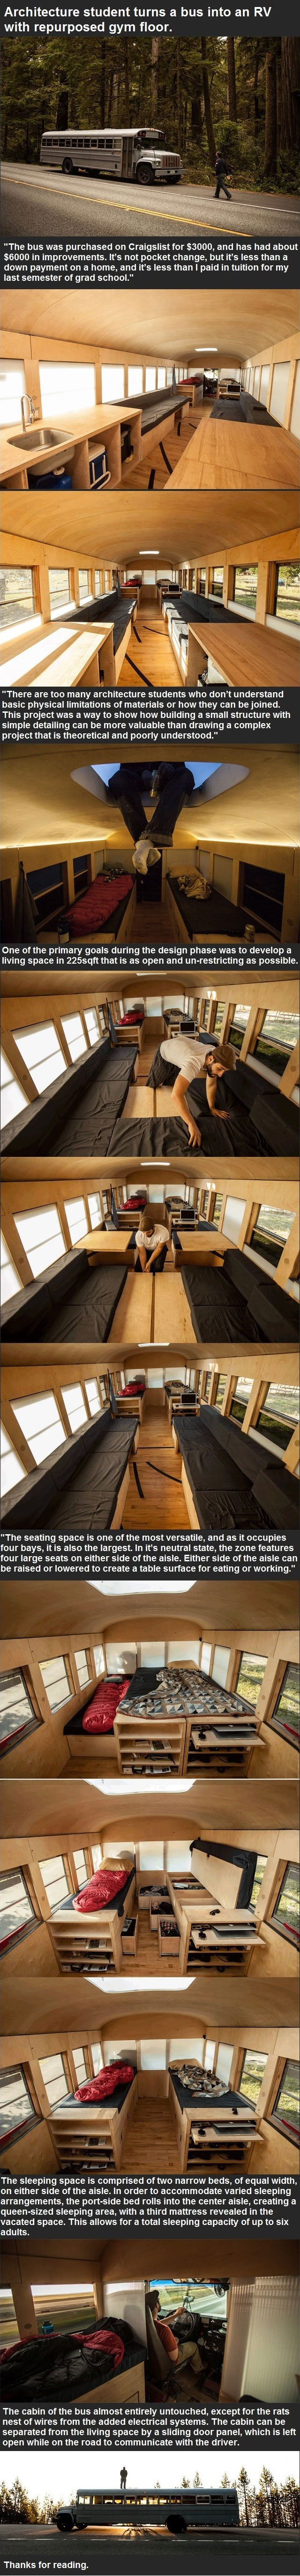 the guy starts with an old school bus and makes somewhere incredible